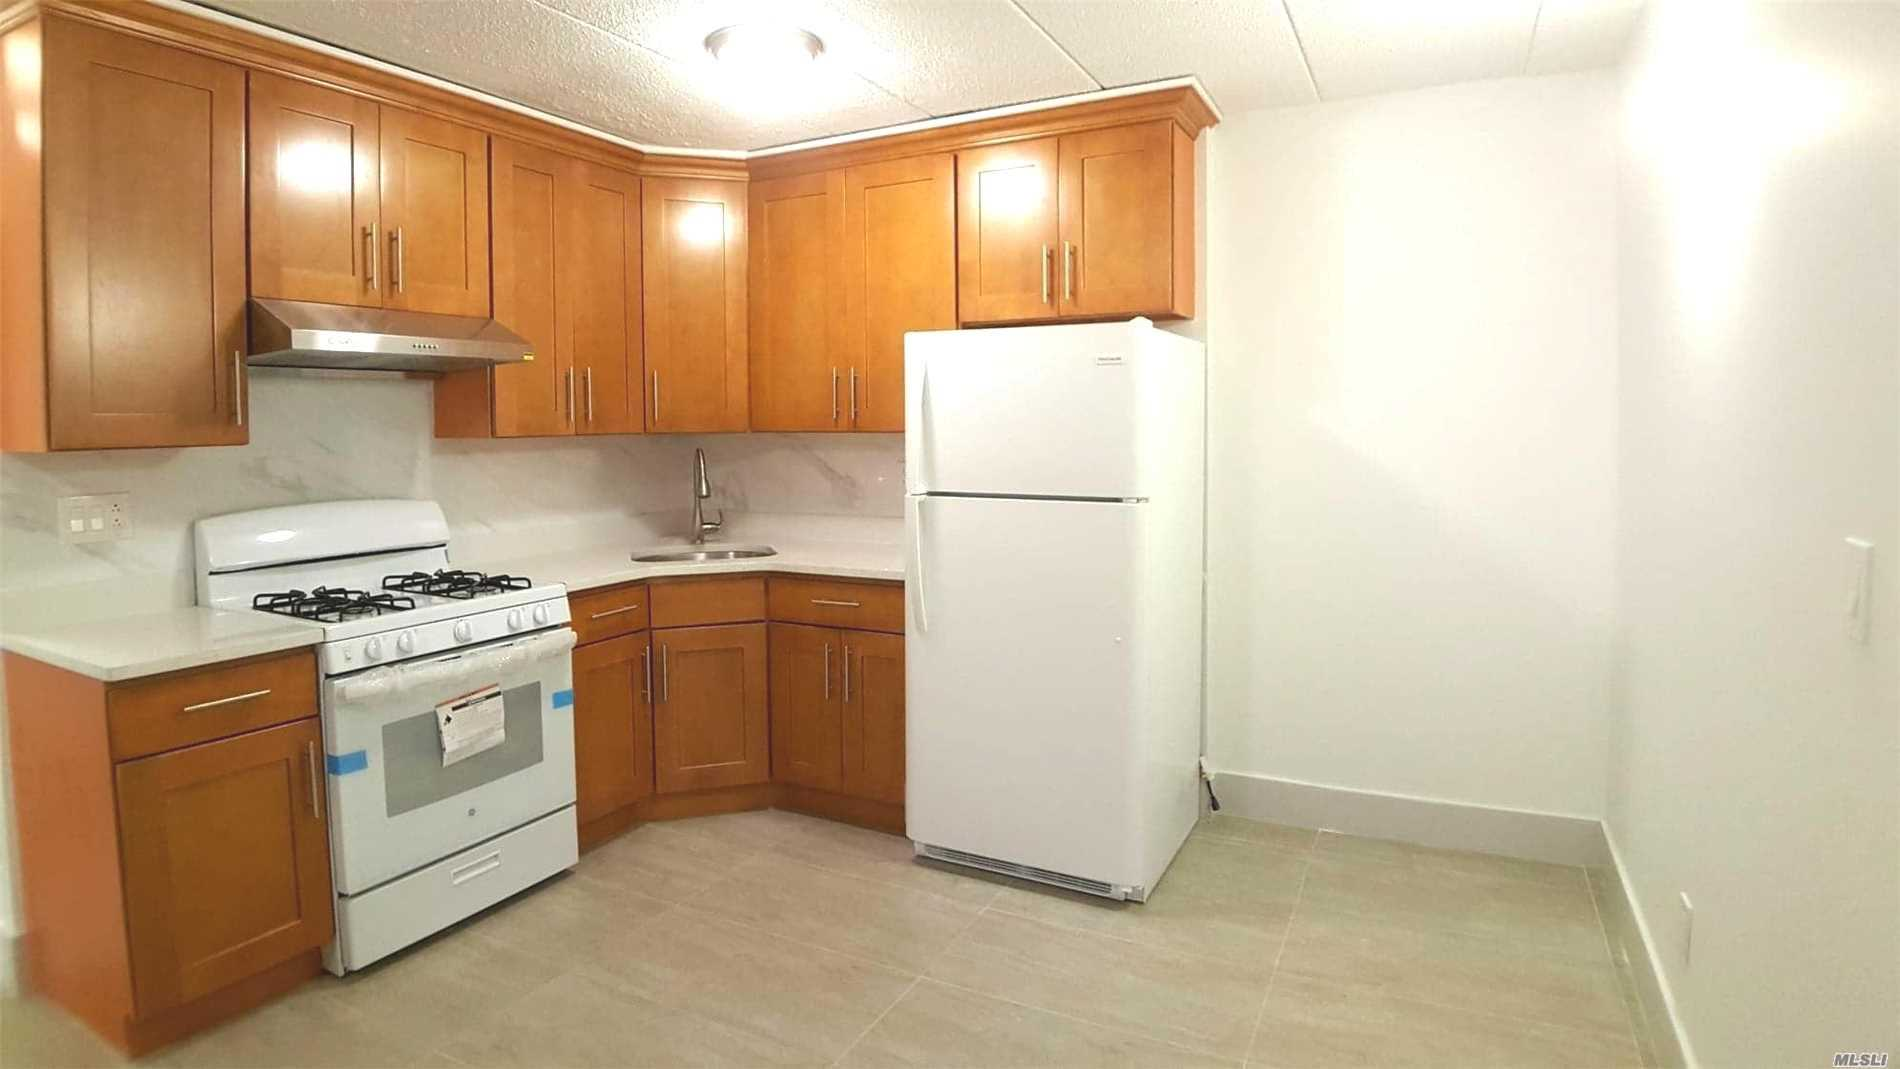 Newly Renovated Modern 2 Bedroom Apartment On Quiet Treeline Street. Two Blocks To Long Island Railroad And Buses (Q12, Q15), With Access To The 7 Train. Close To Many Restaurants And Shopping/Supermarkets